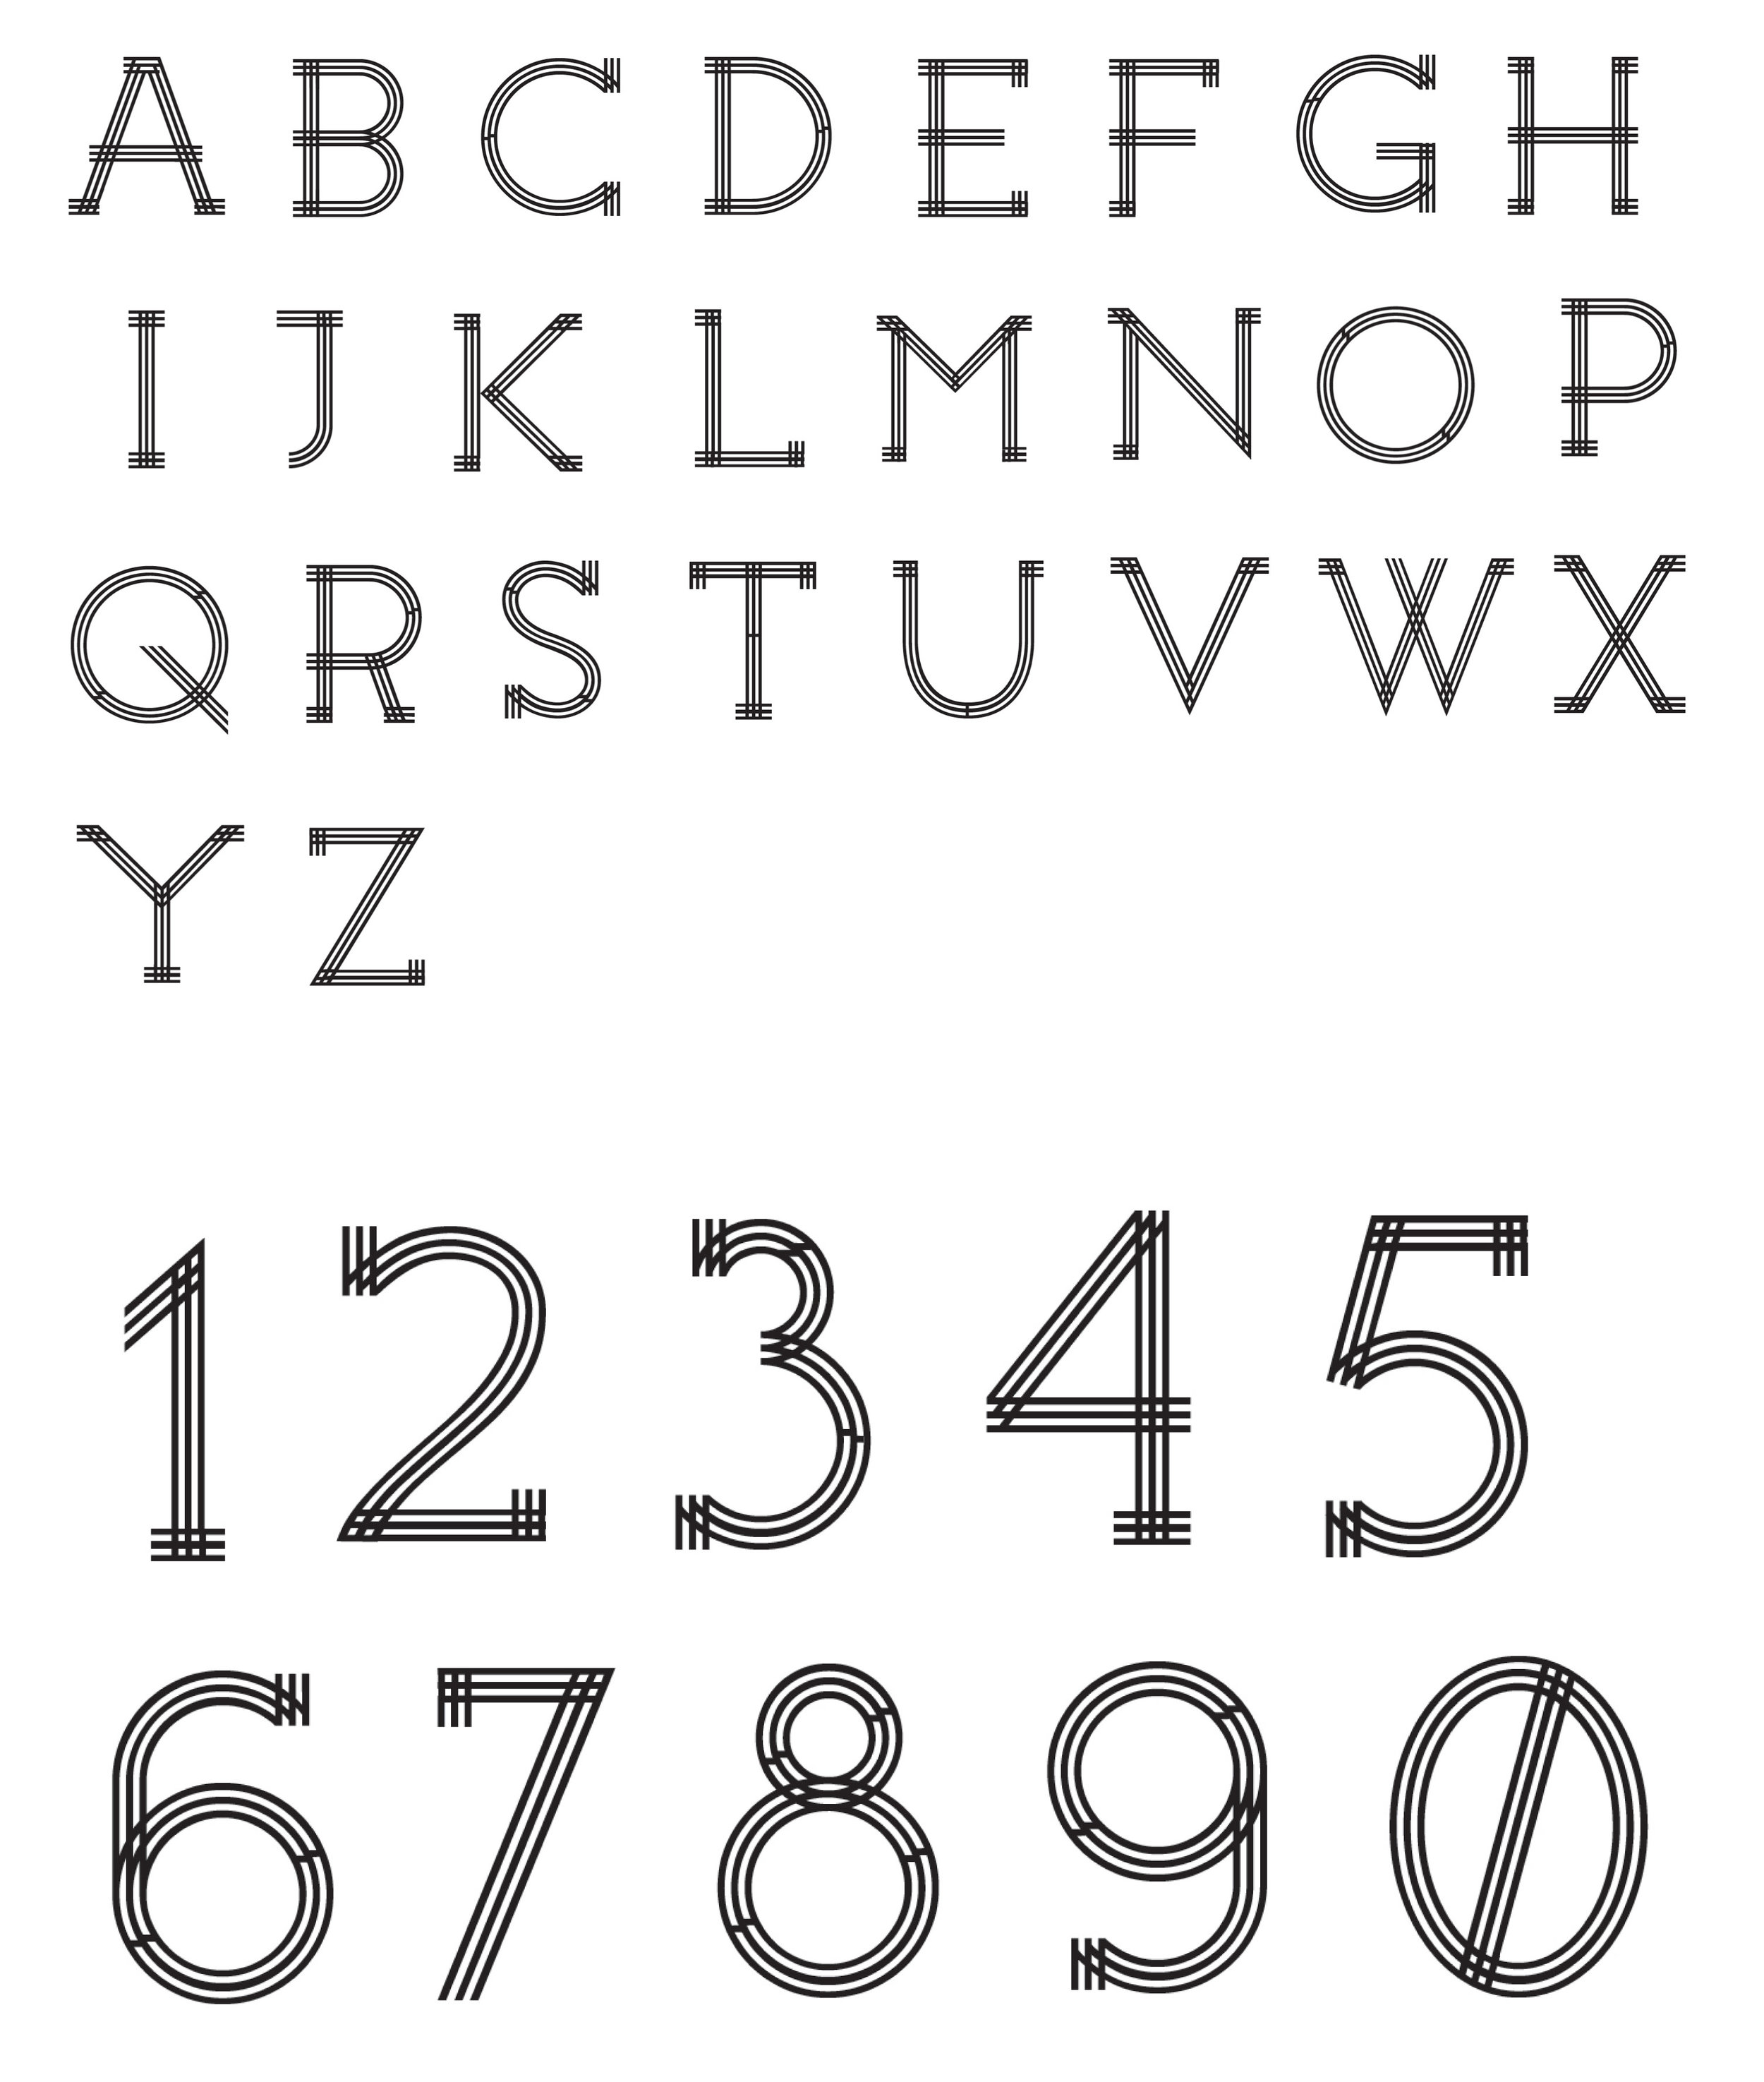 Jim, Year 3 - Branding typeface draft